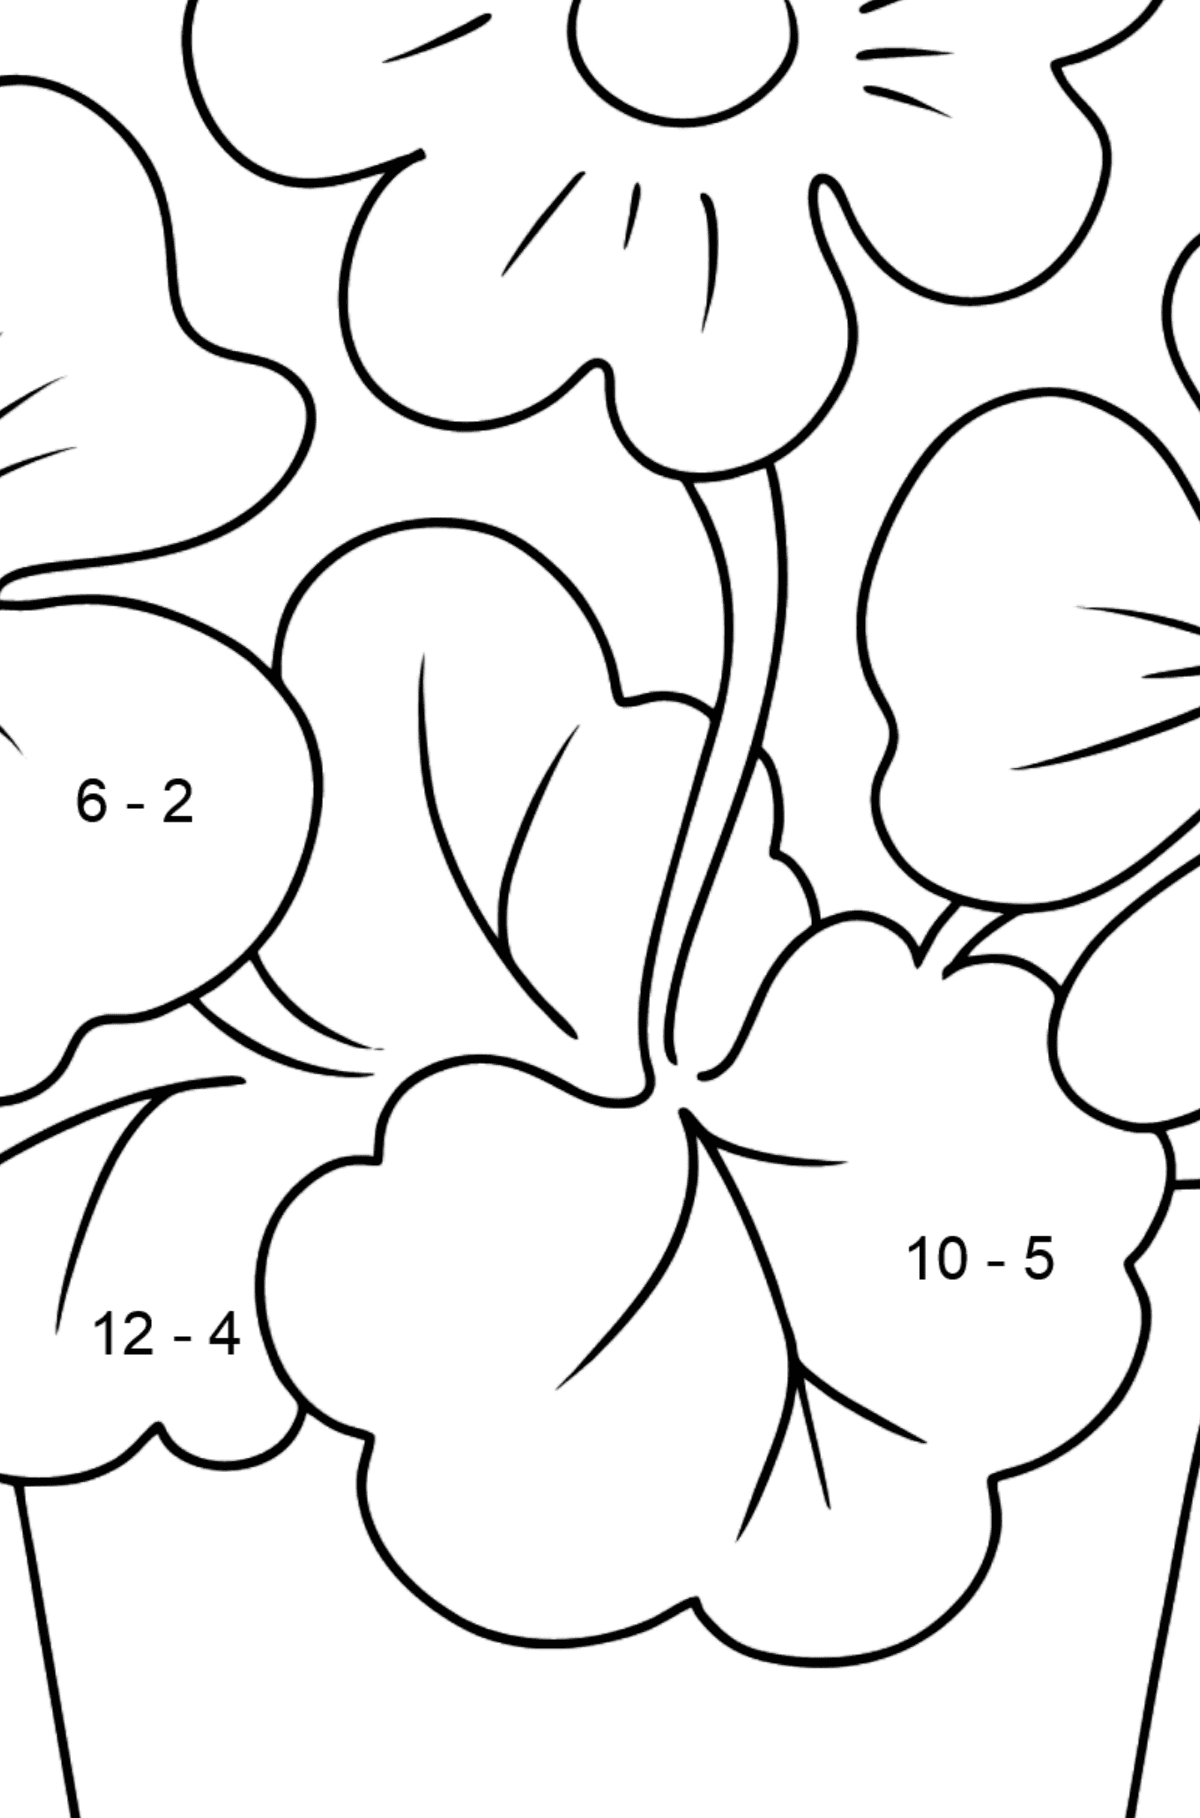 Coloring Page - flowers in a pot - Math Coloring - Subtraction for Kids